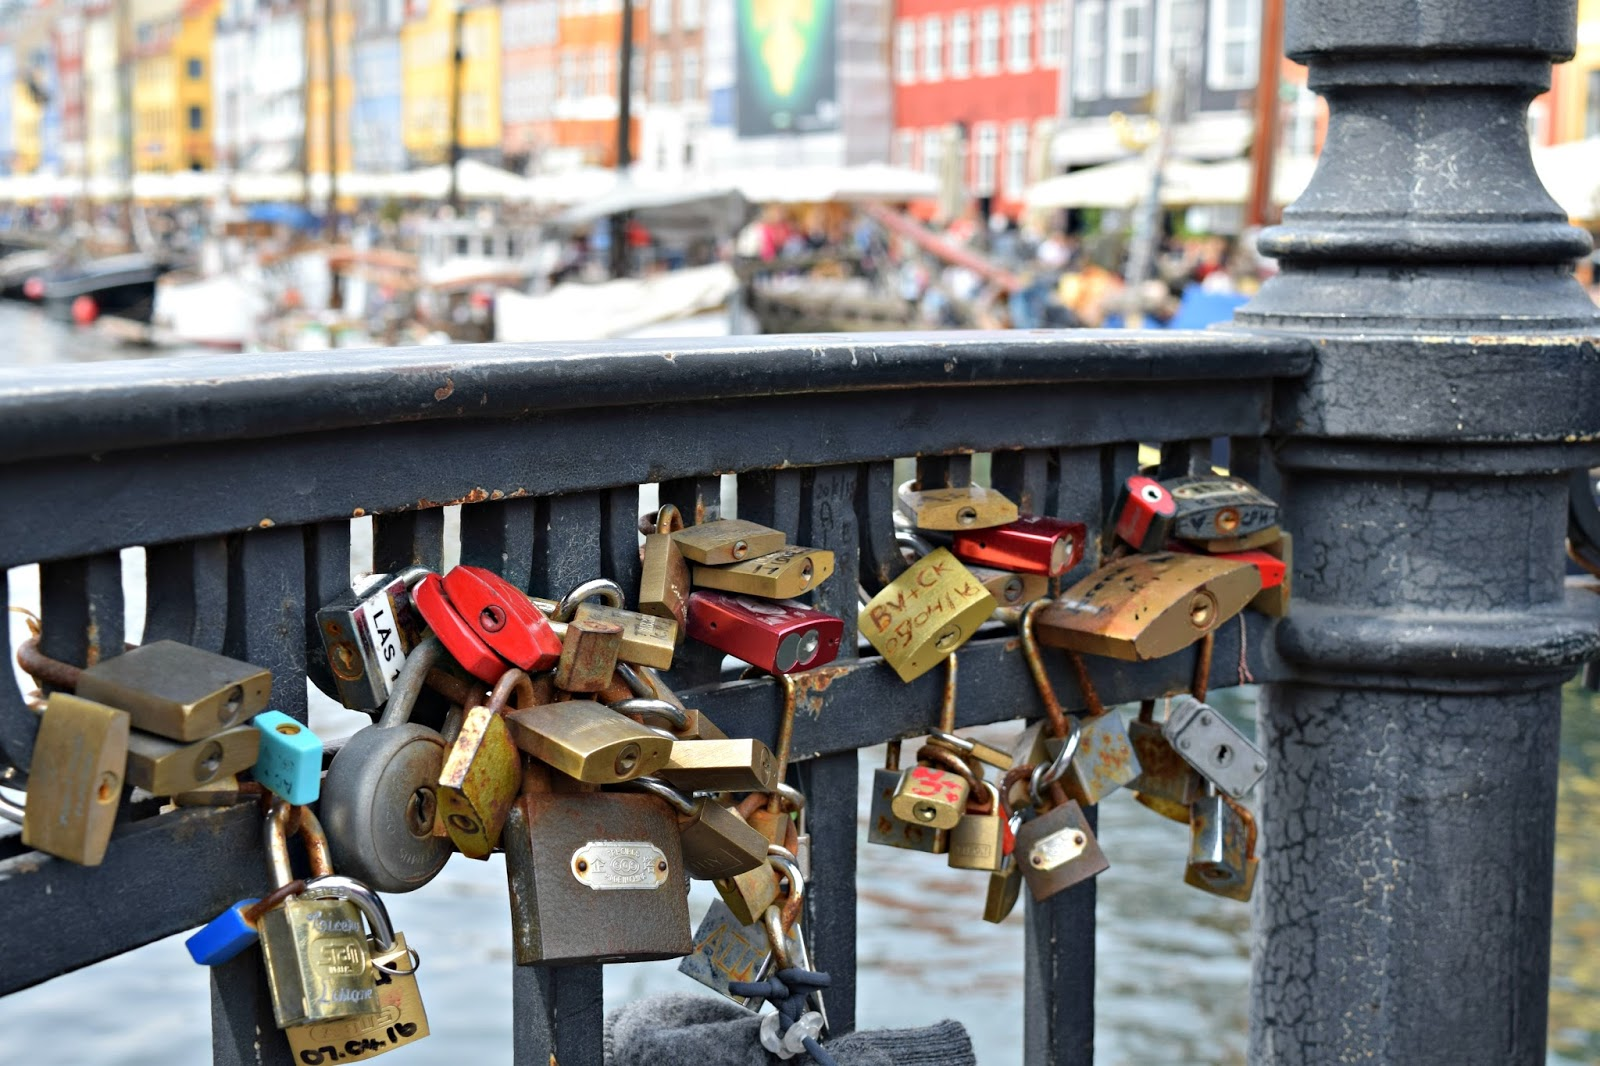 Love Padlocks at NyHavn in Copenhagen